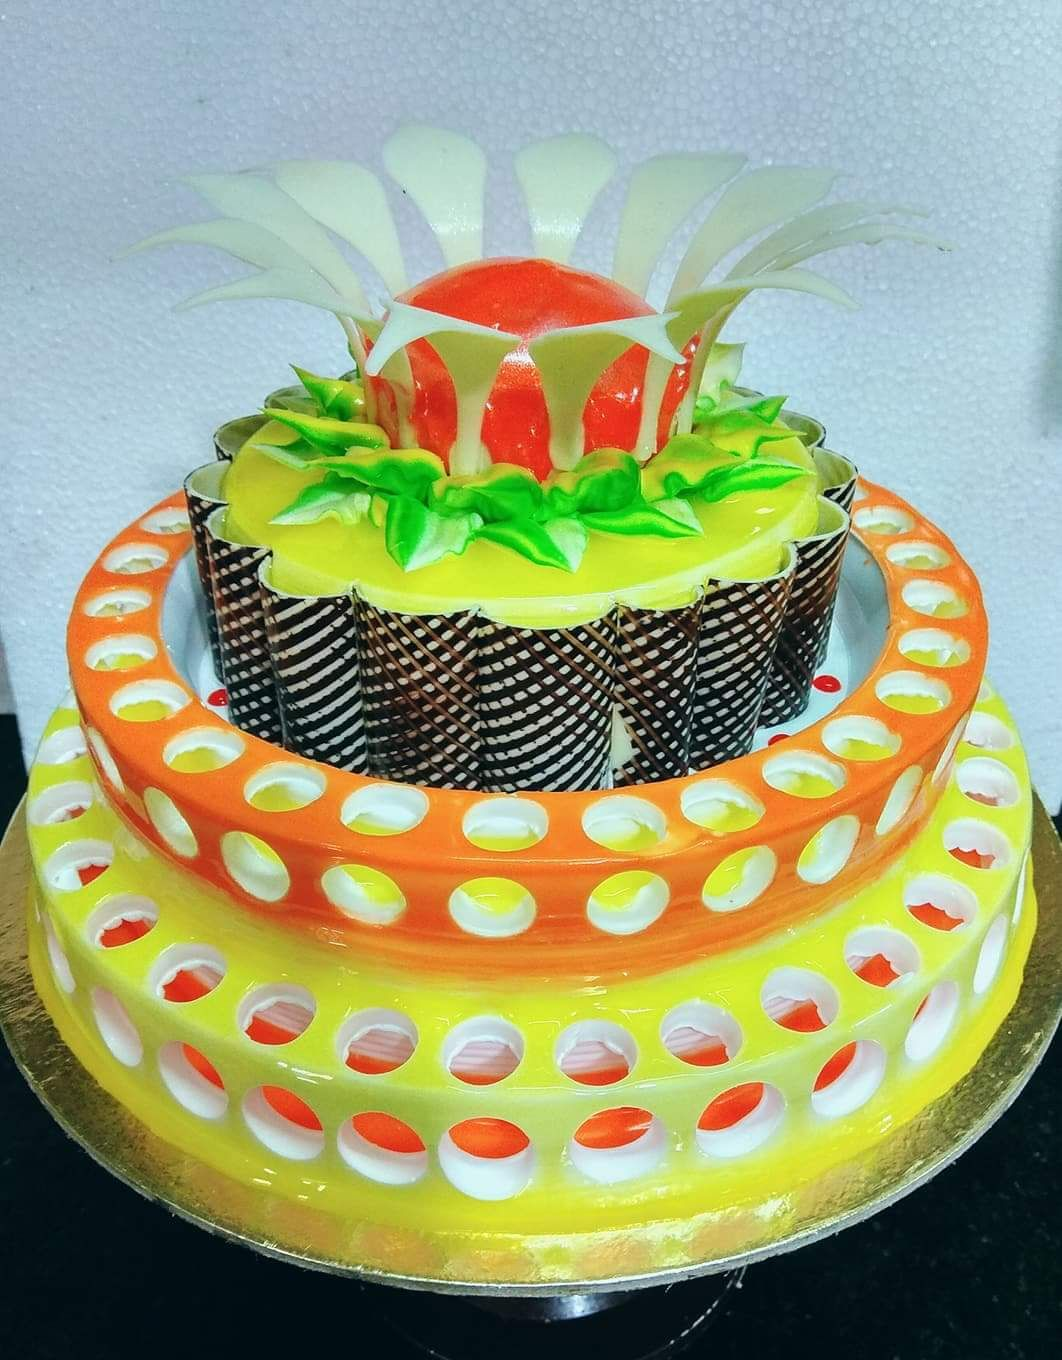 Online Cake Delivery Kolkata West Bengal India Cakes Are Time Honored Desserts Served During Several